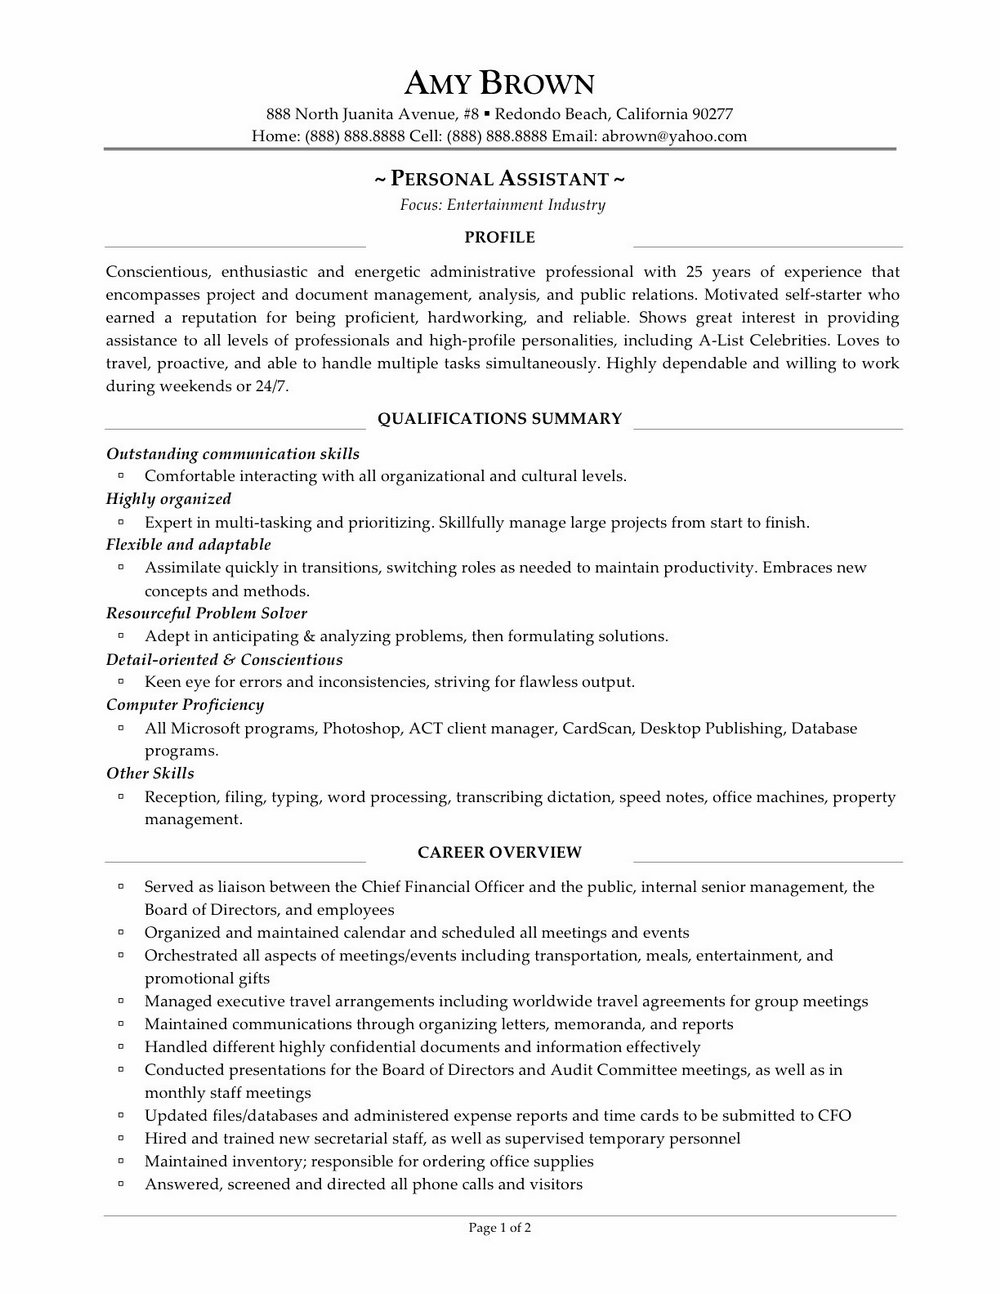 Resume Samples For Fitness Professionals